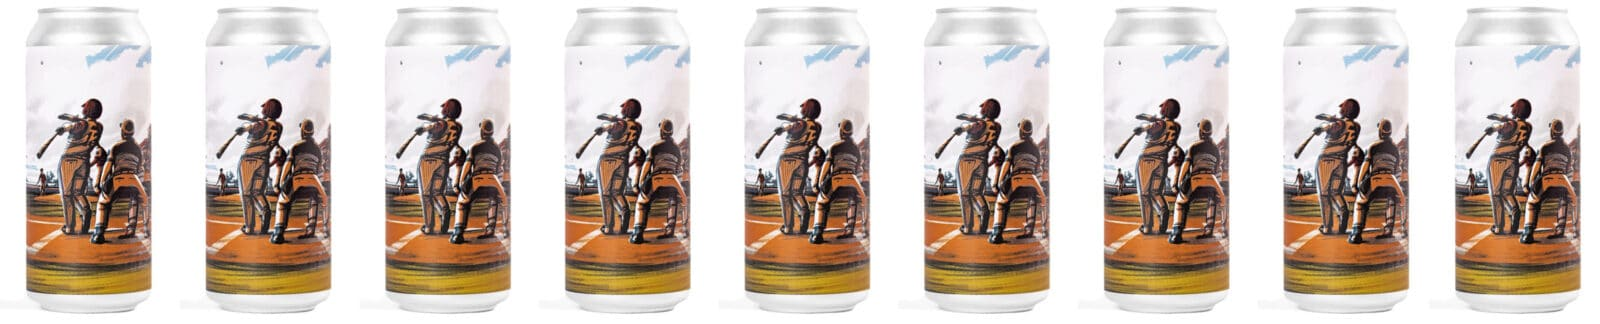 Fall Classic American IPA Beer by Treehouse